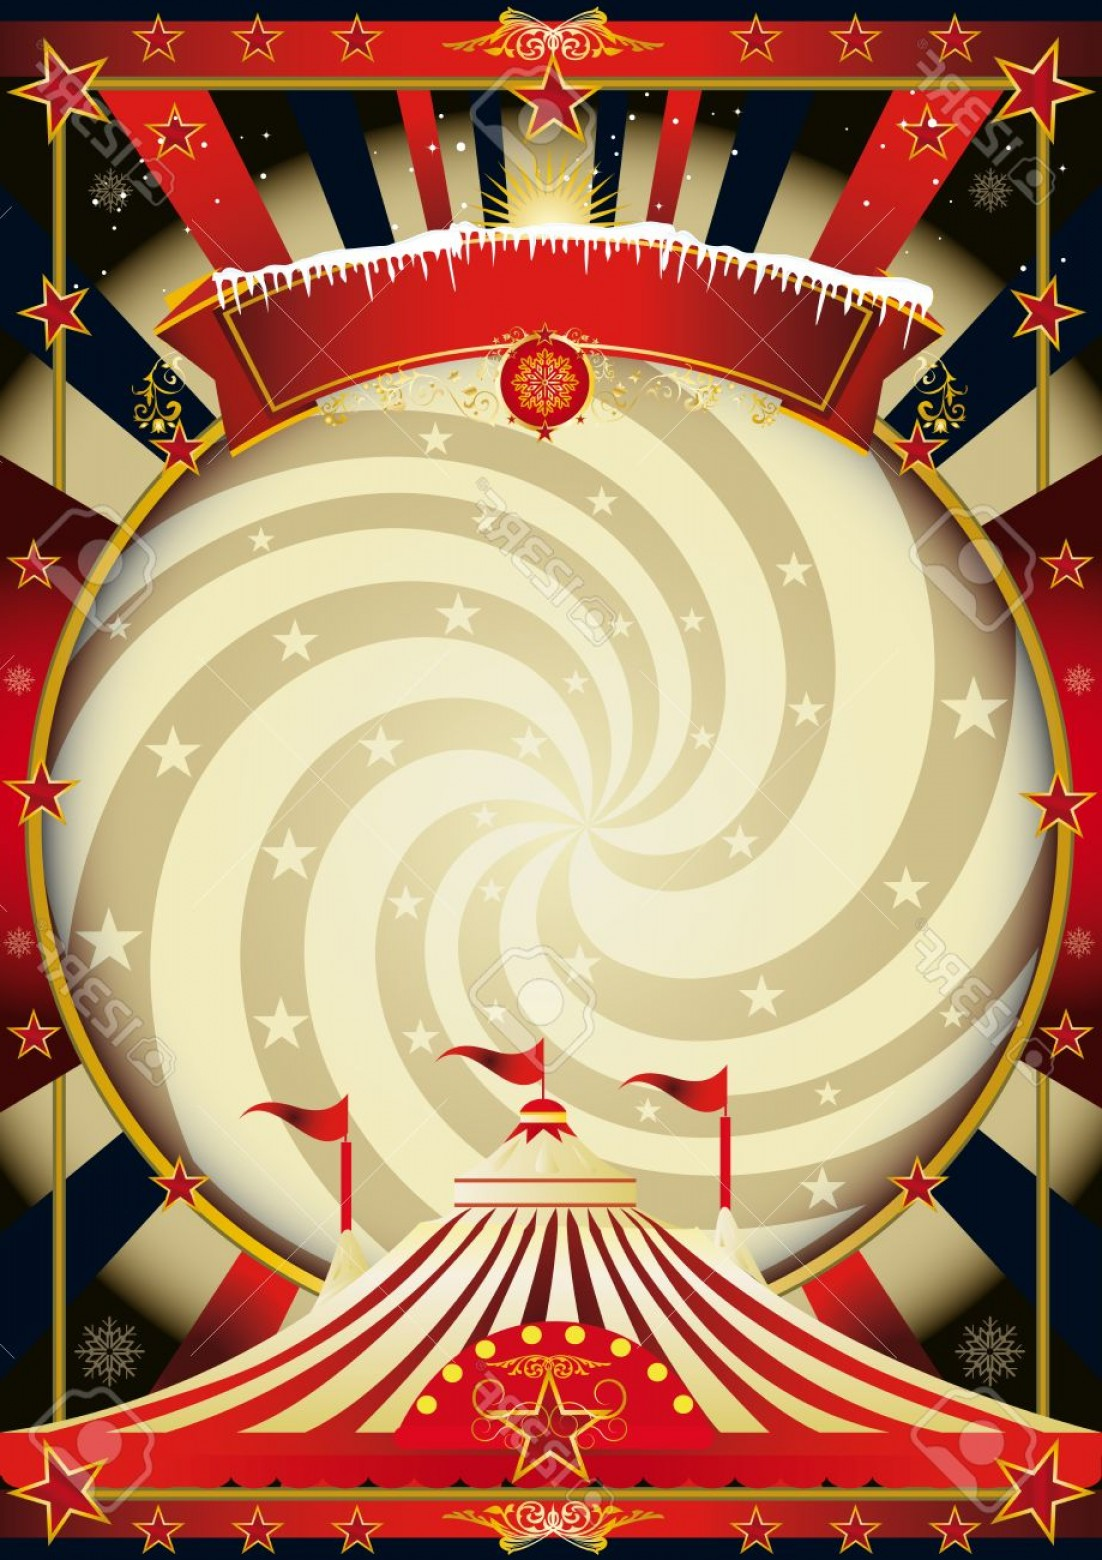 Circus Background Vector: Photostock Vector A Vintage Circus Background For Christmas